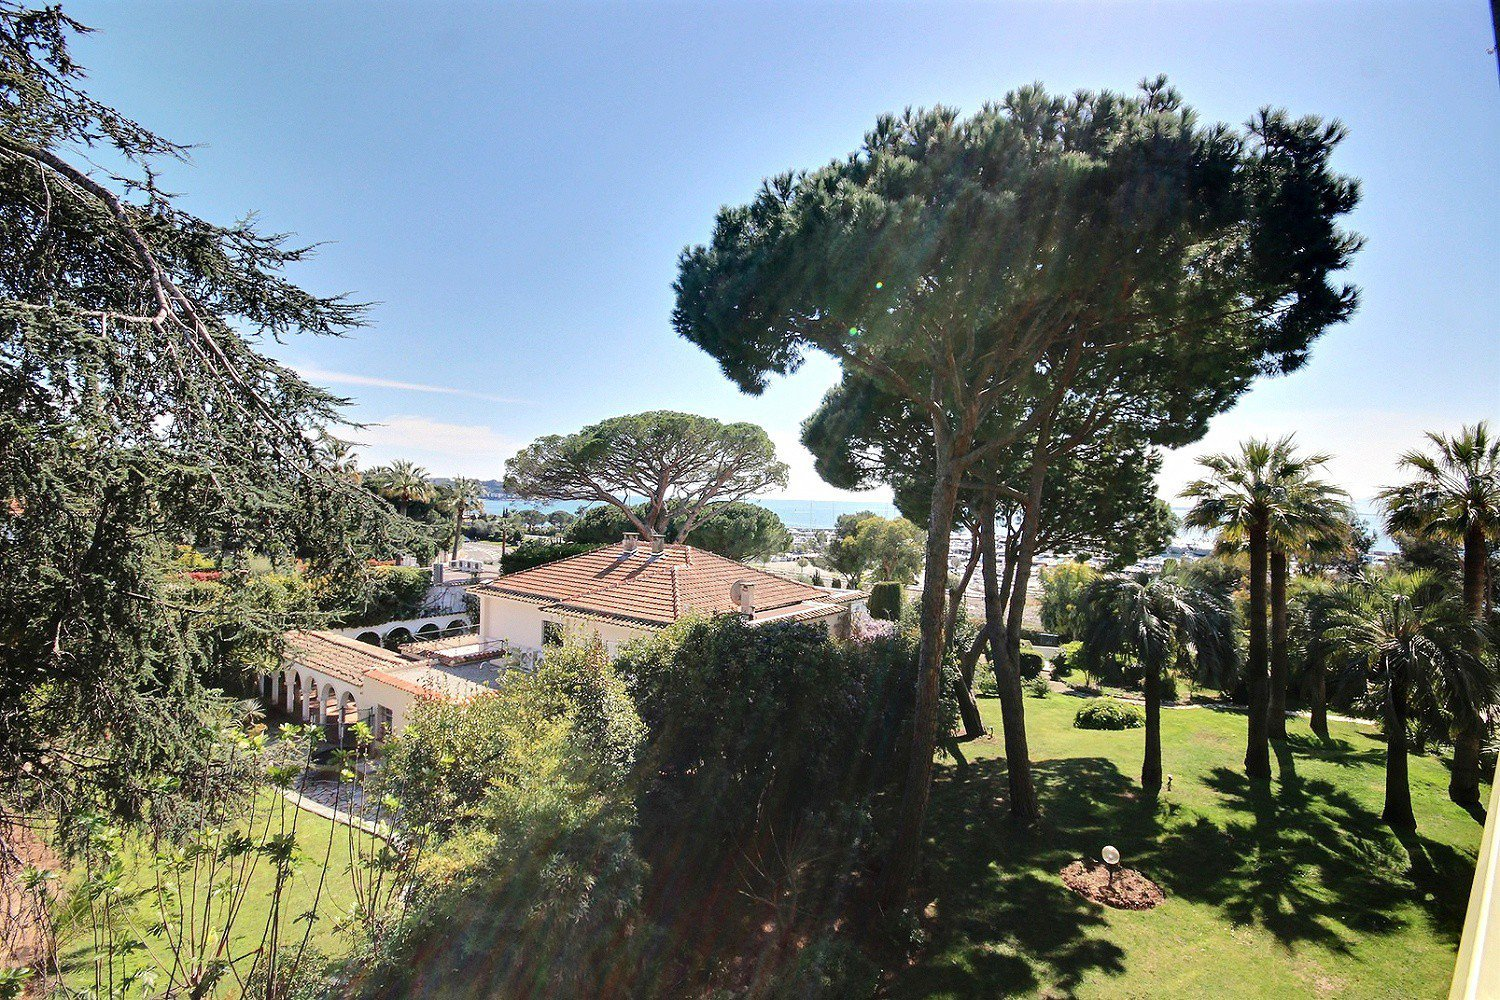 Cap d'Antibes - Sole agent - walking distance to the sea, shops and restaurants